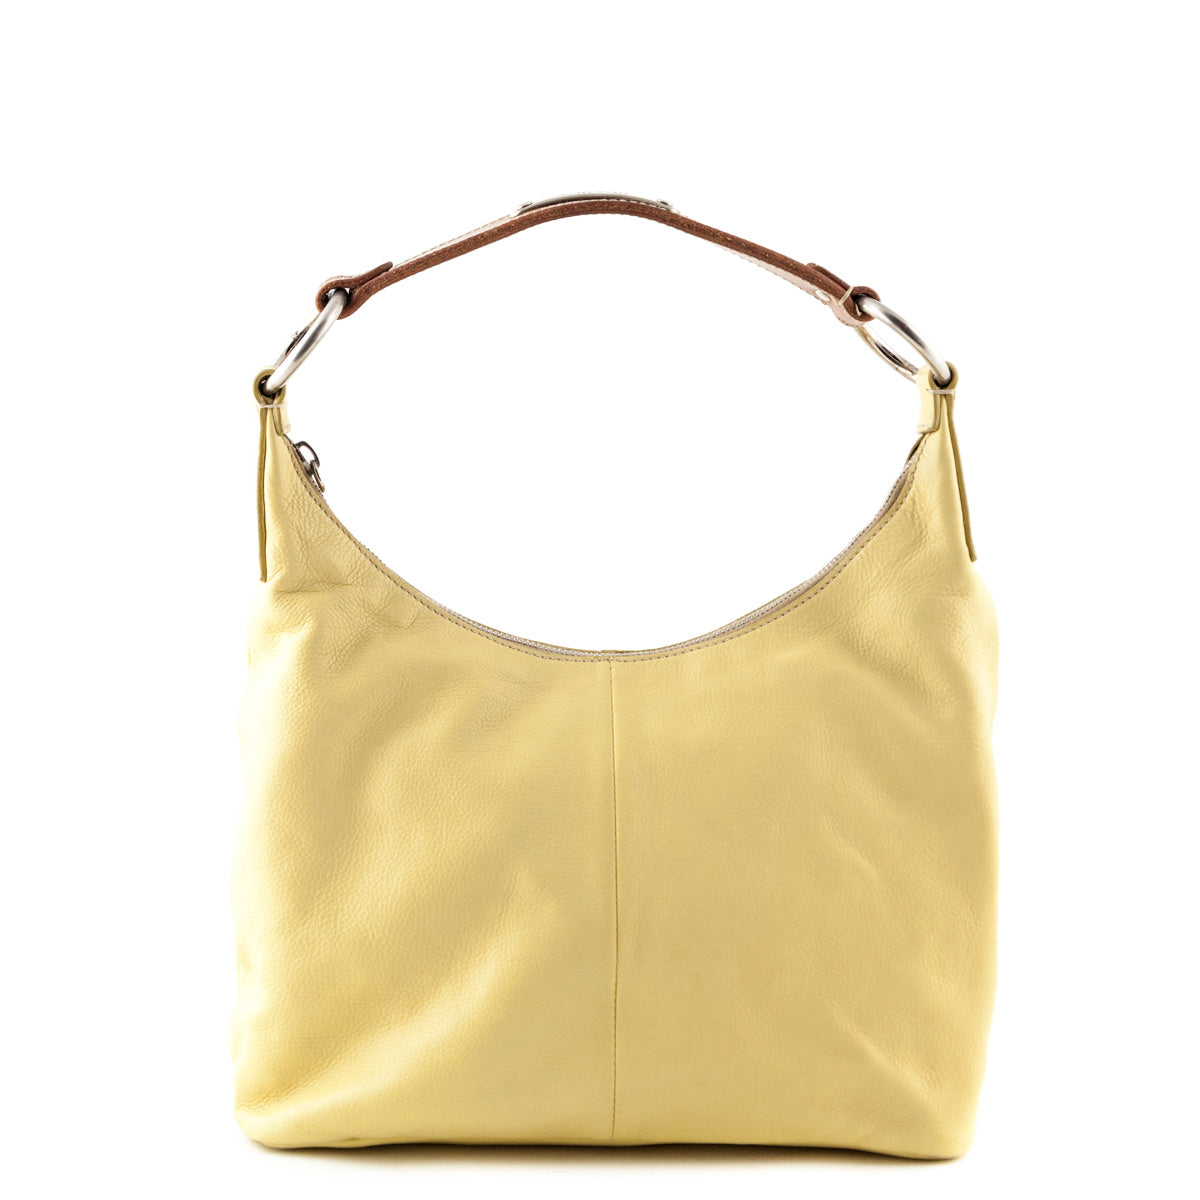 Miu Miu Mustard Leather Shoulder Bag - LOVE that BAG - Preowned Authentic  Designer Handbags ... 36faf5e3d8925